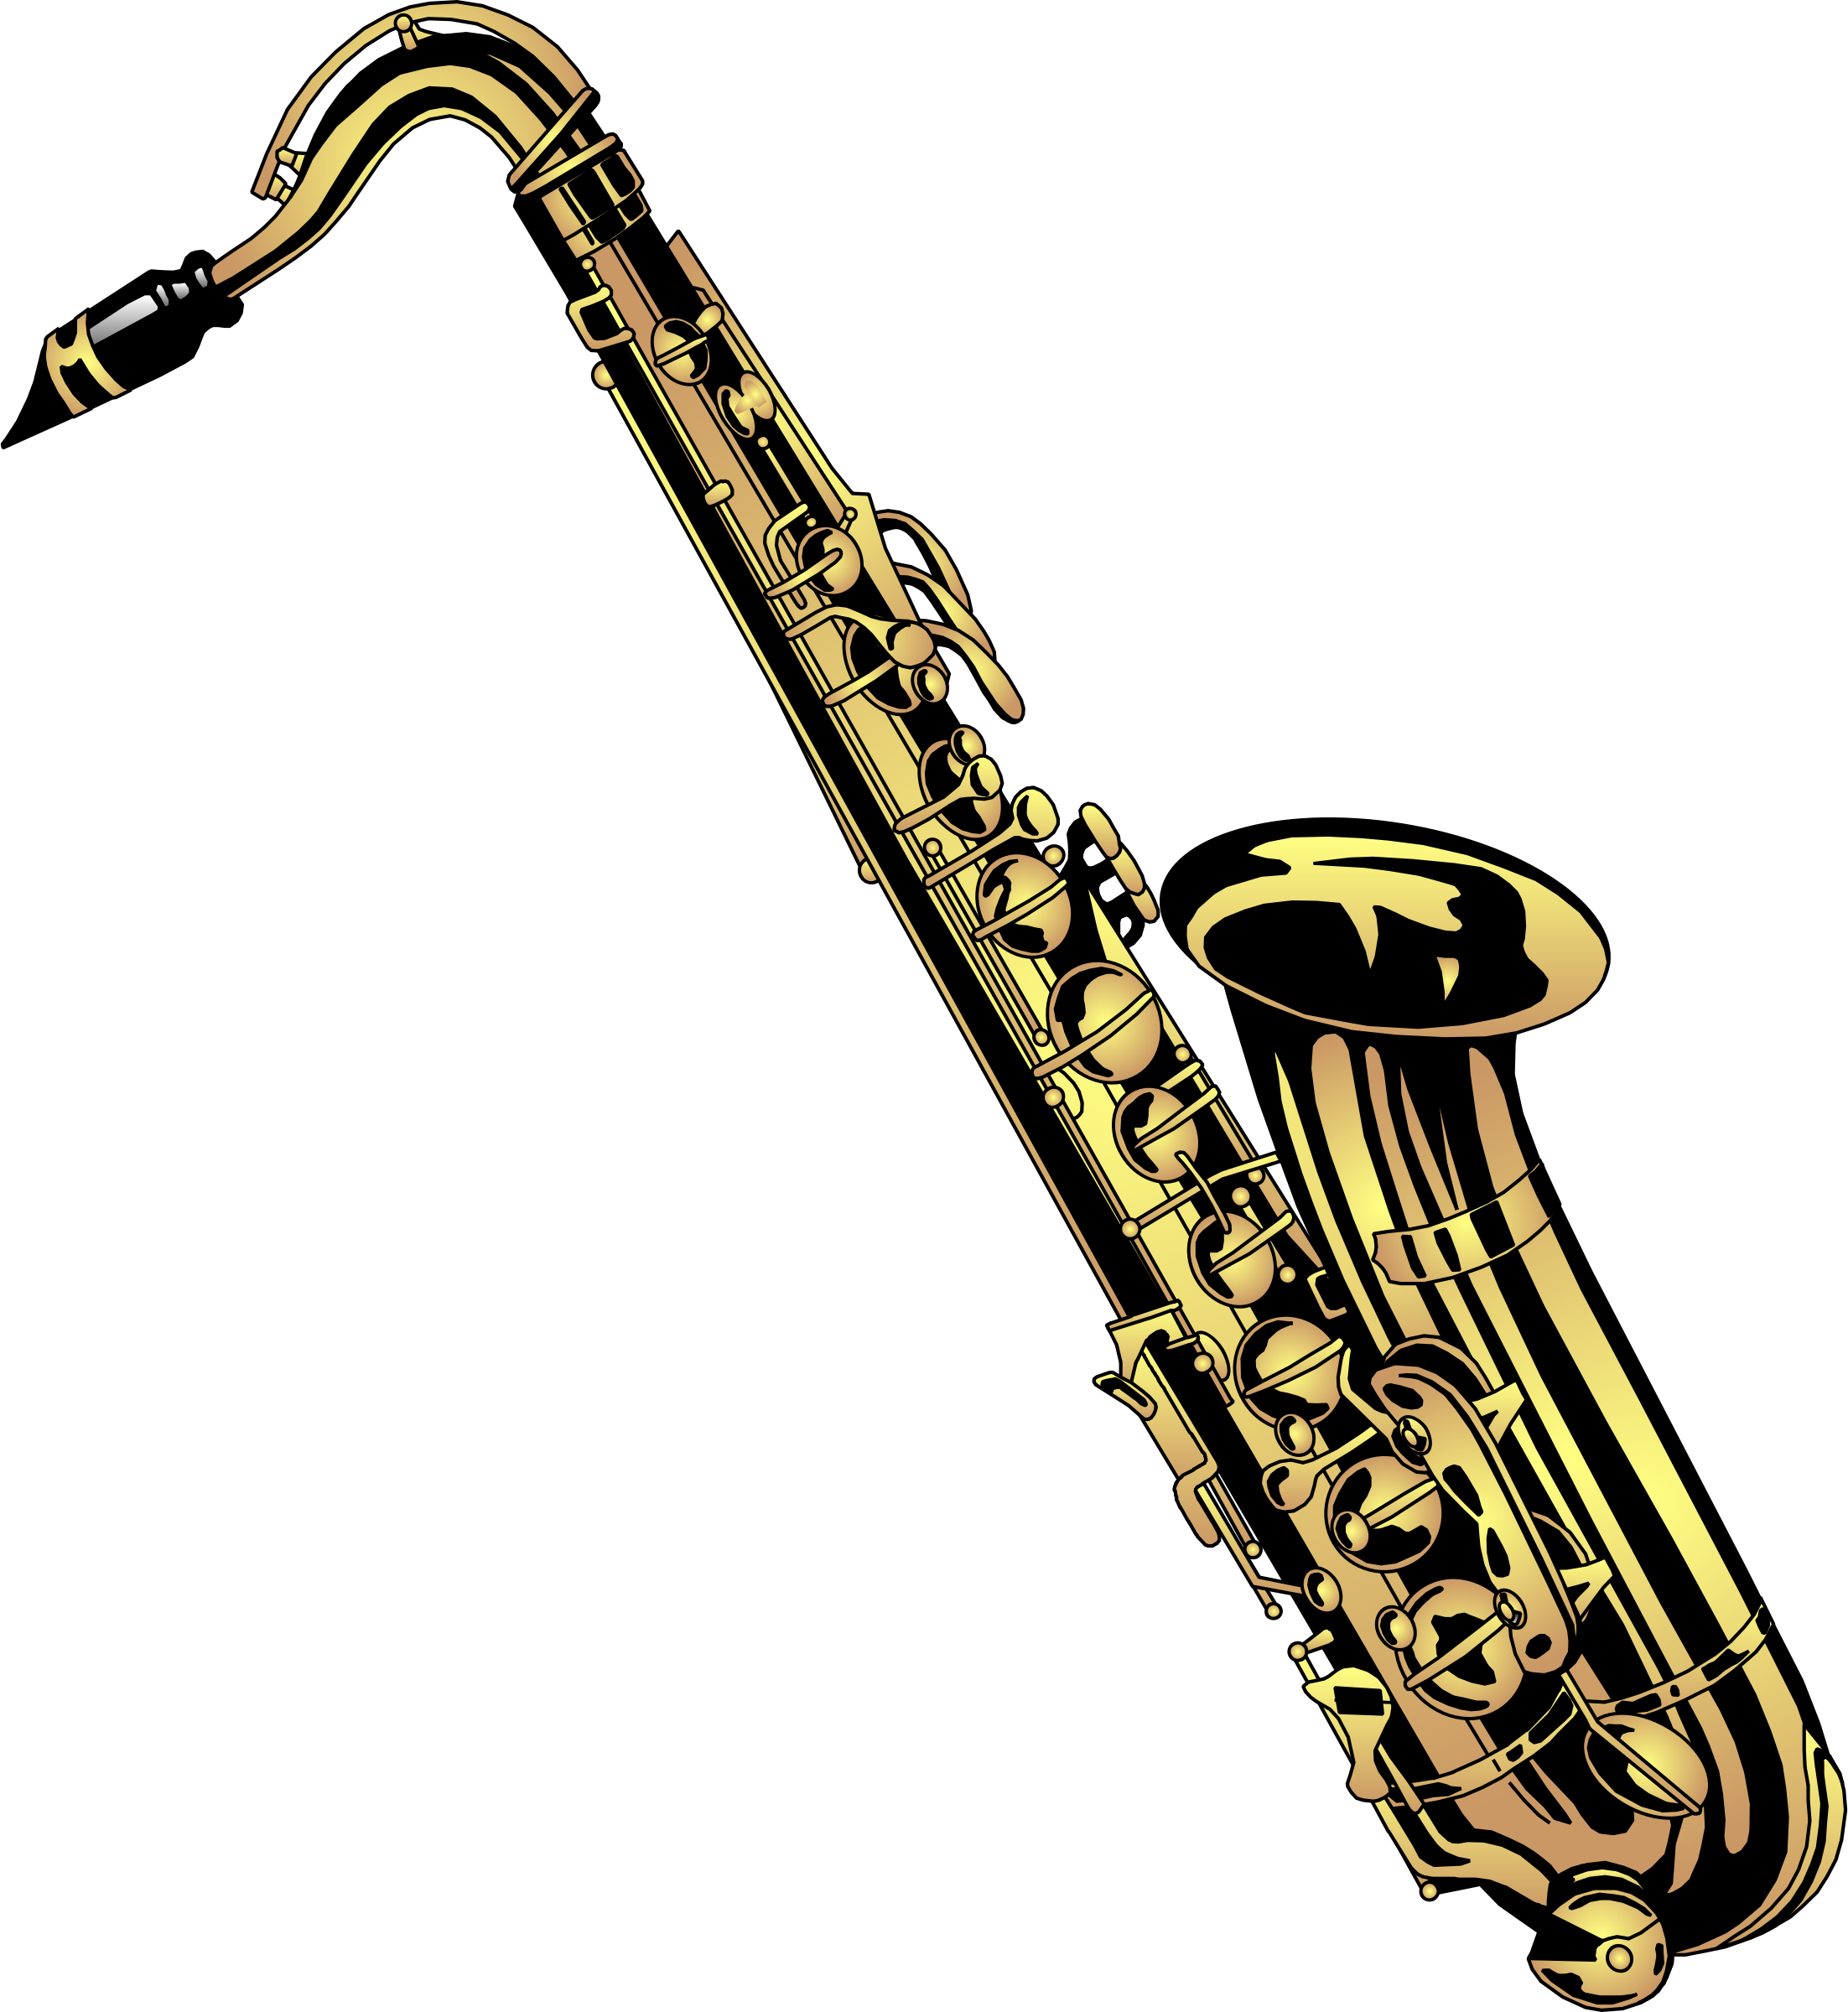 Saxophone big image png. Clarinet clipart small